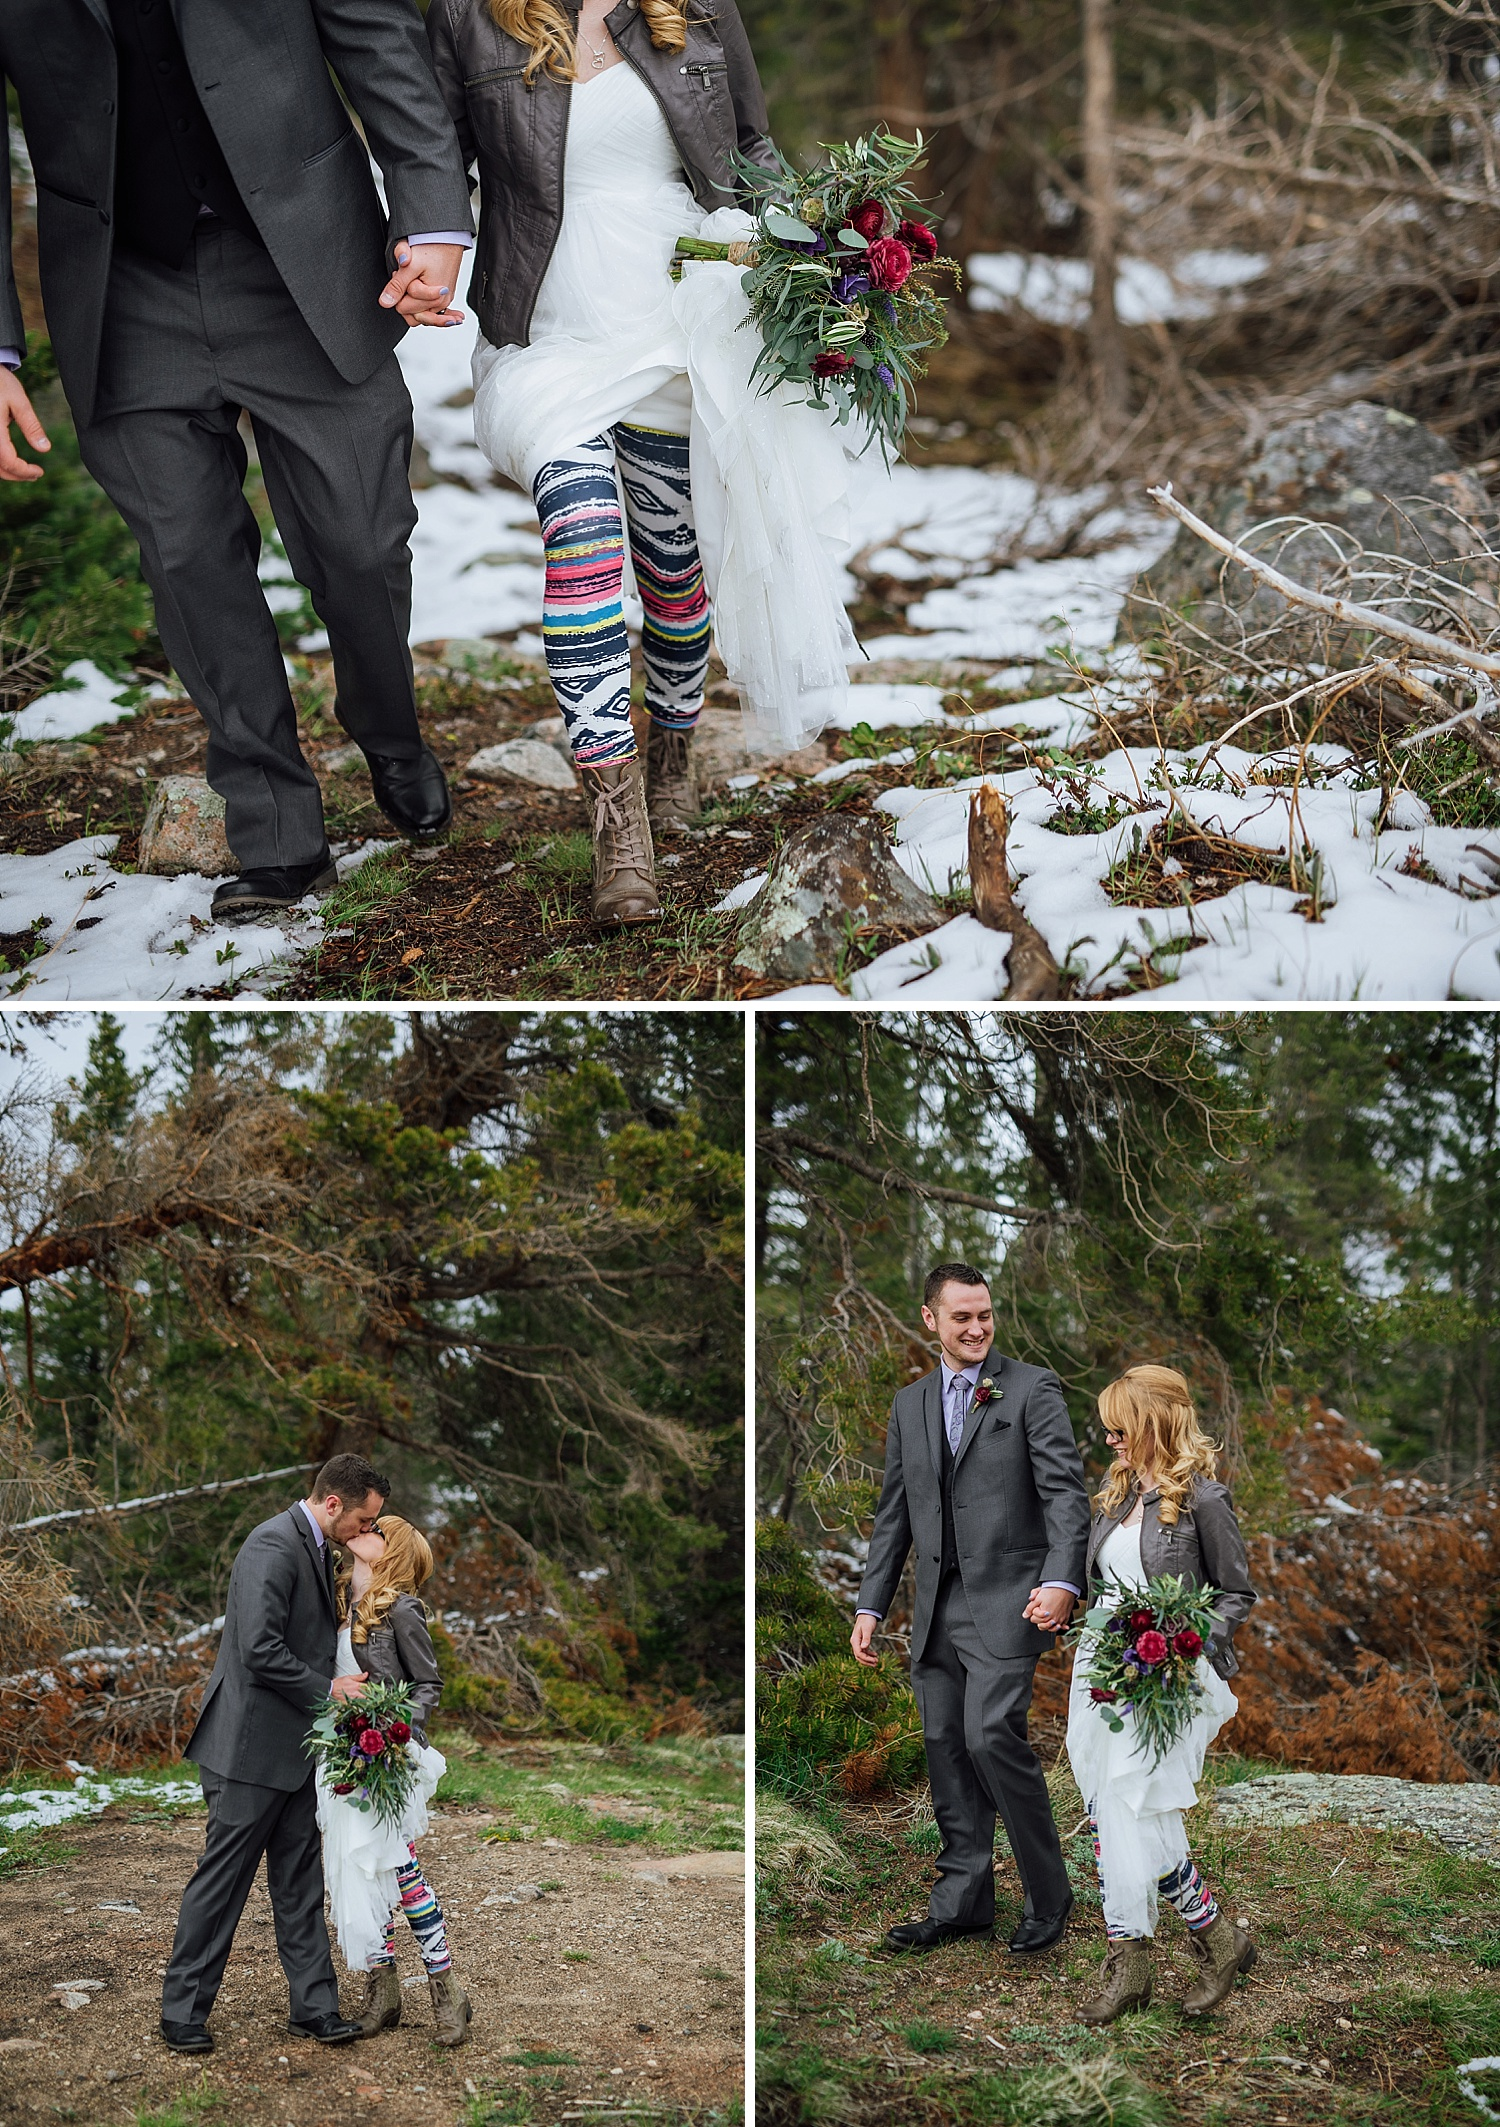 This is so unique! For winter weddings, wear striped, colorful yoga pants/leggings underneath your wedding dress. Also wear boots ad a jacket! This perfect for a mountain wedding!! Photo by Maddie Mae Photography